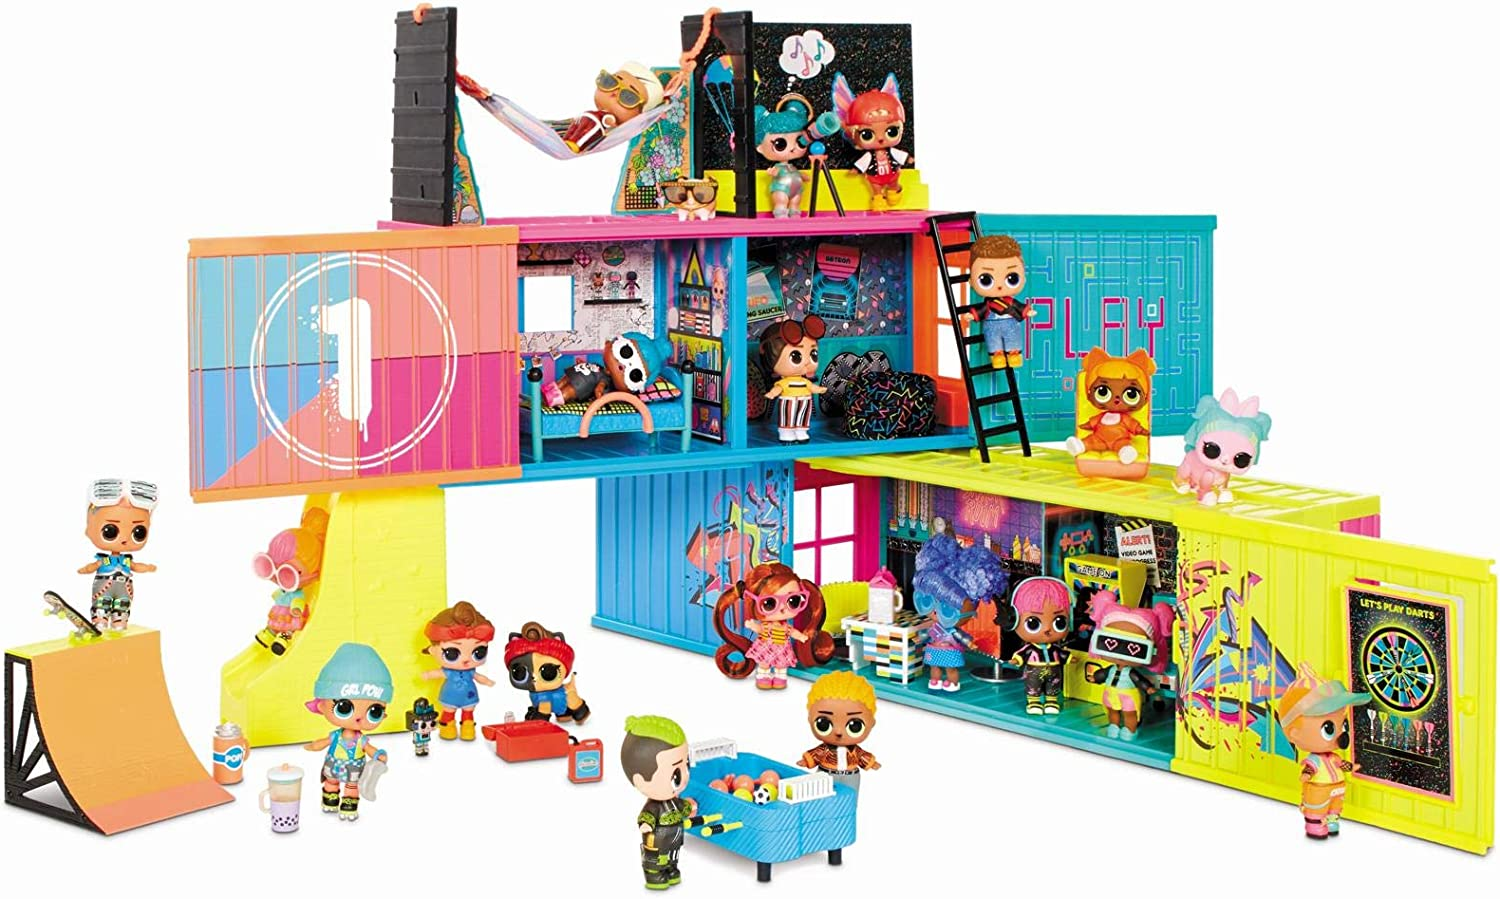 L.O.L. Surprise! Clubhouse Playset – With 40+ Surprises 33% OFF £36.95 @ Amazon